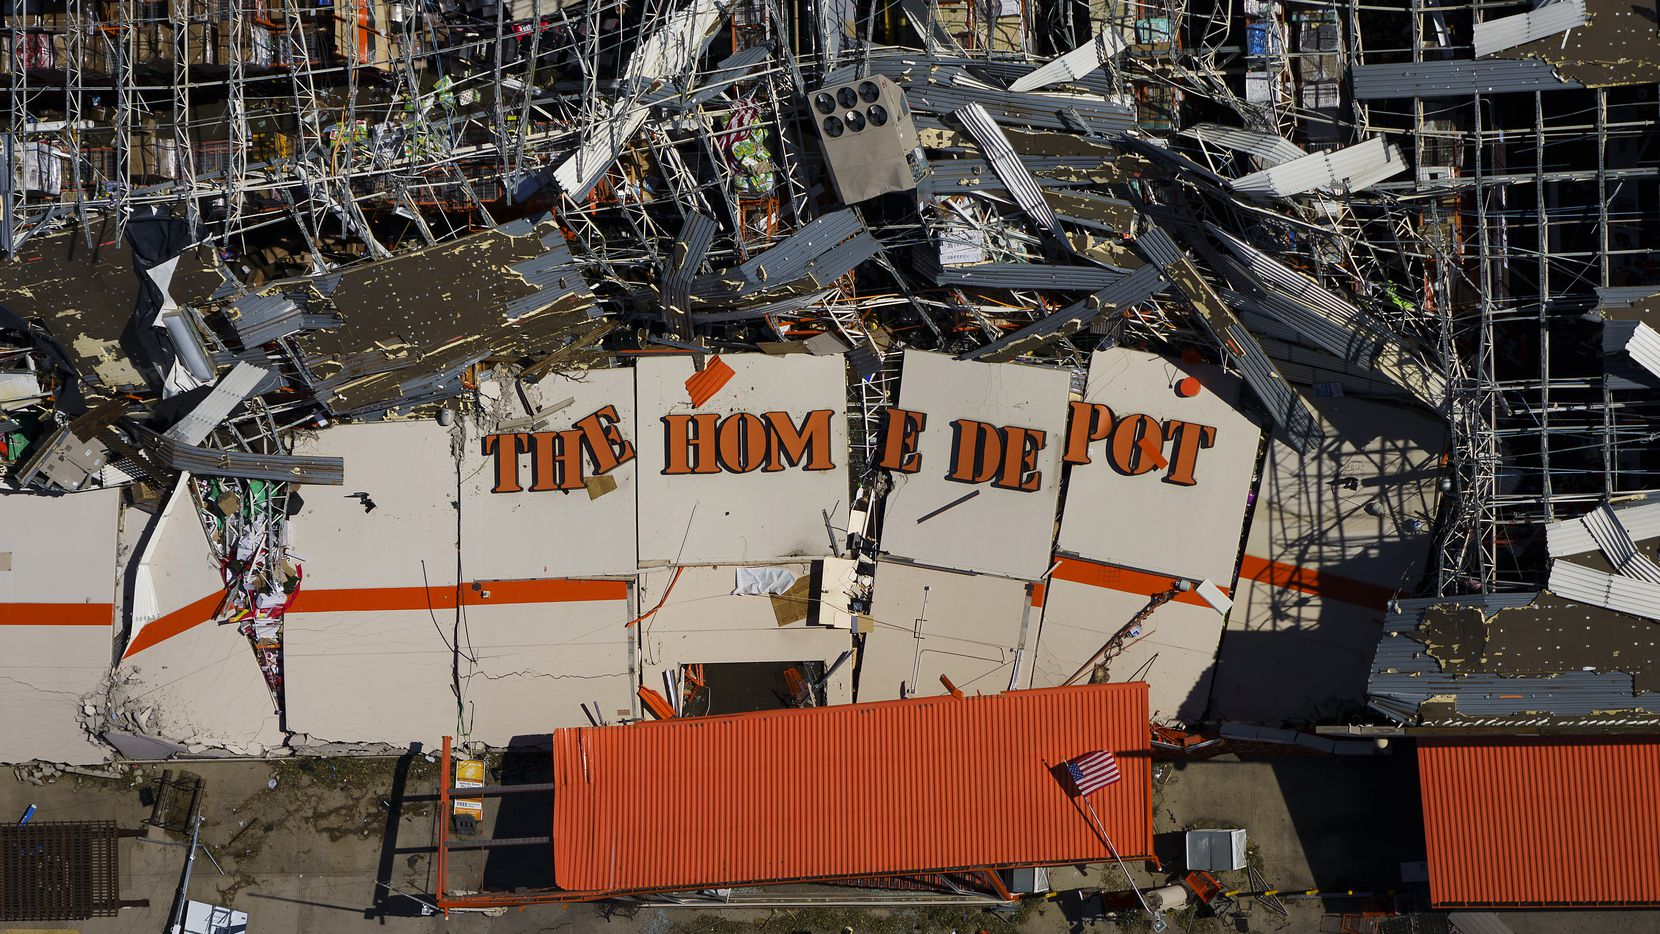 The destroyed Home Depot store at 11682 Forest Central Drive is seen in an aerial view of tornado damage on Monday, Oct. 21, 2019, in Dallas.